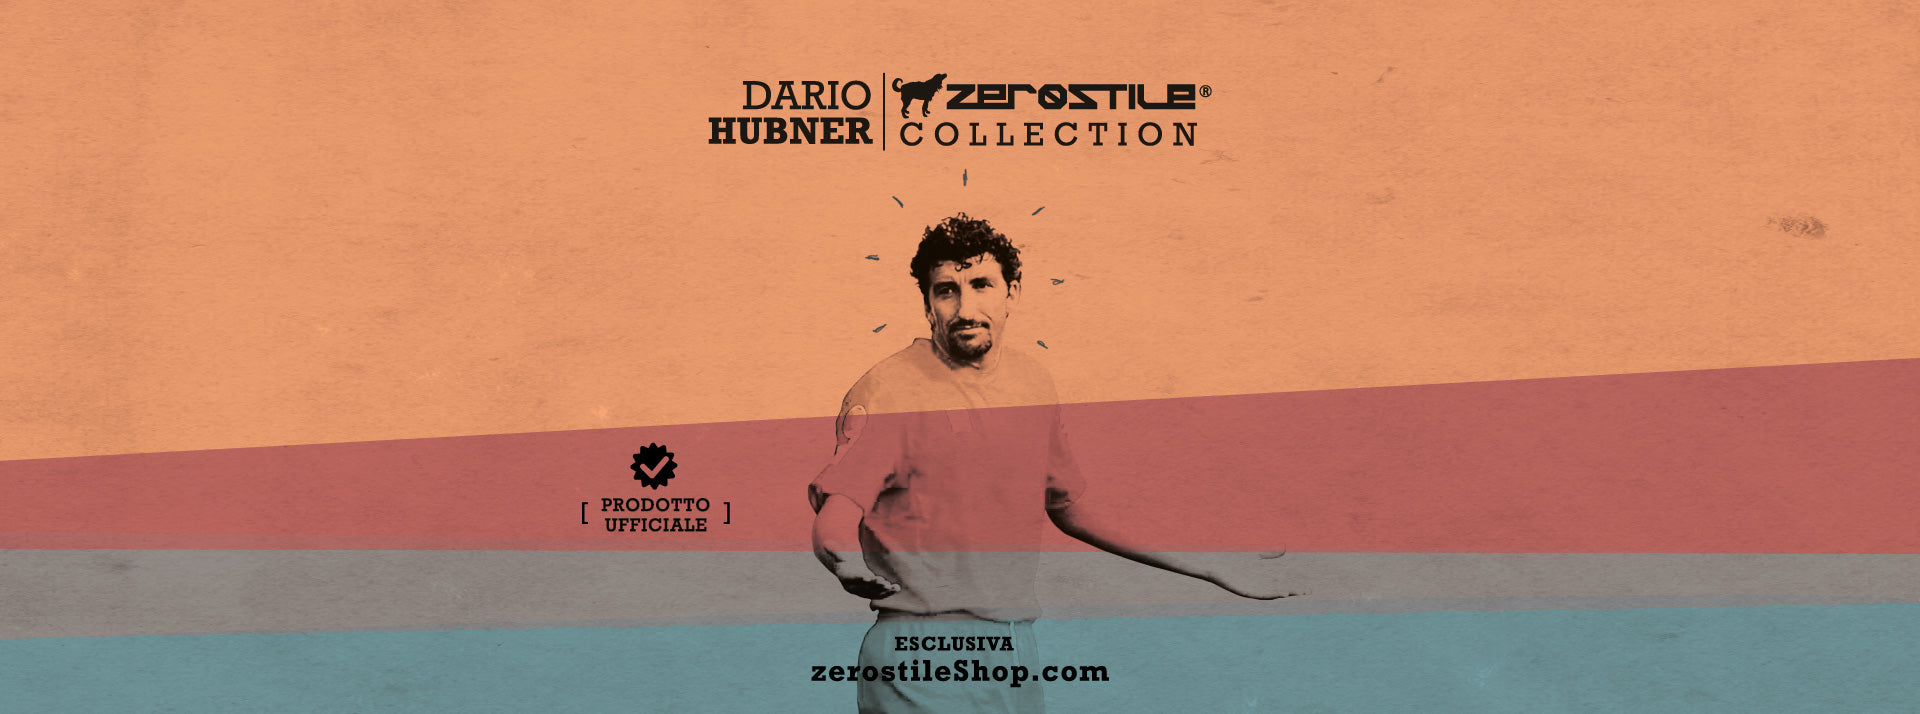 Dario Hubner Collection